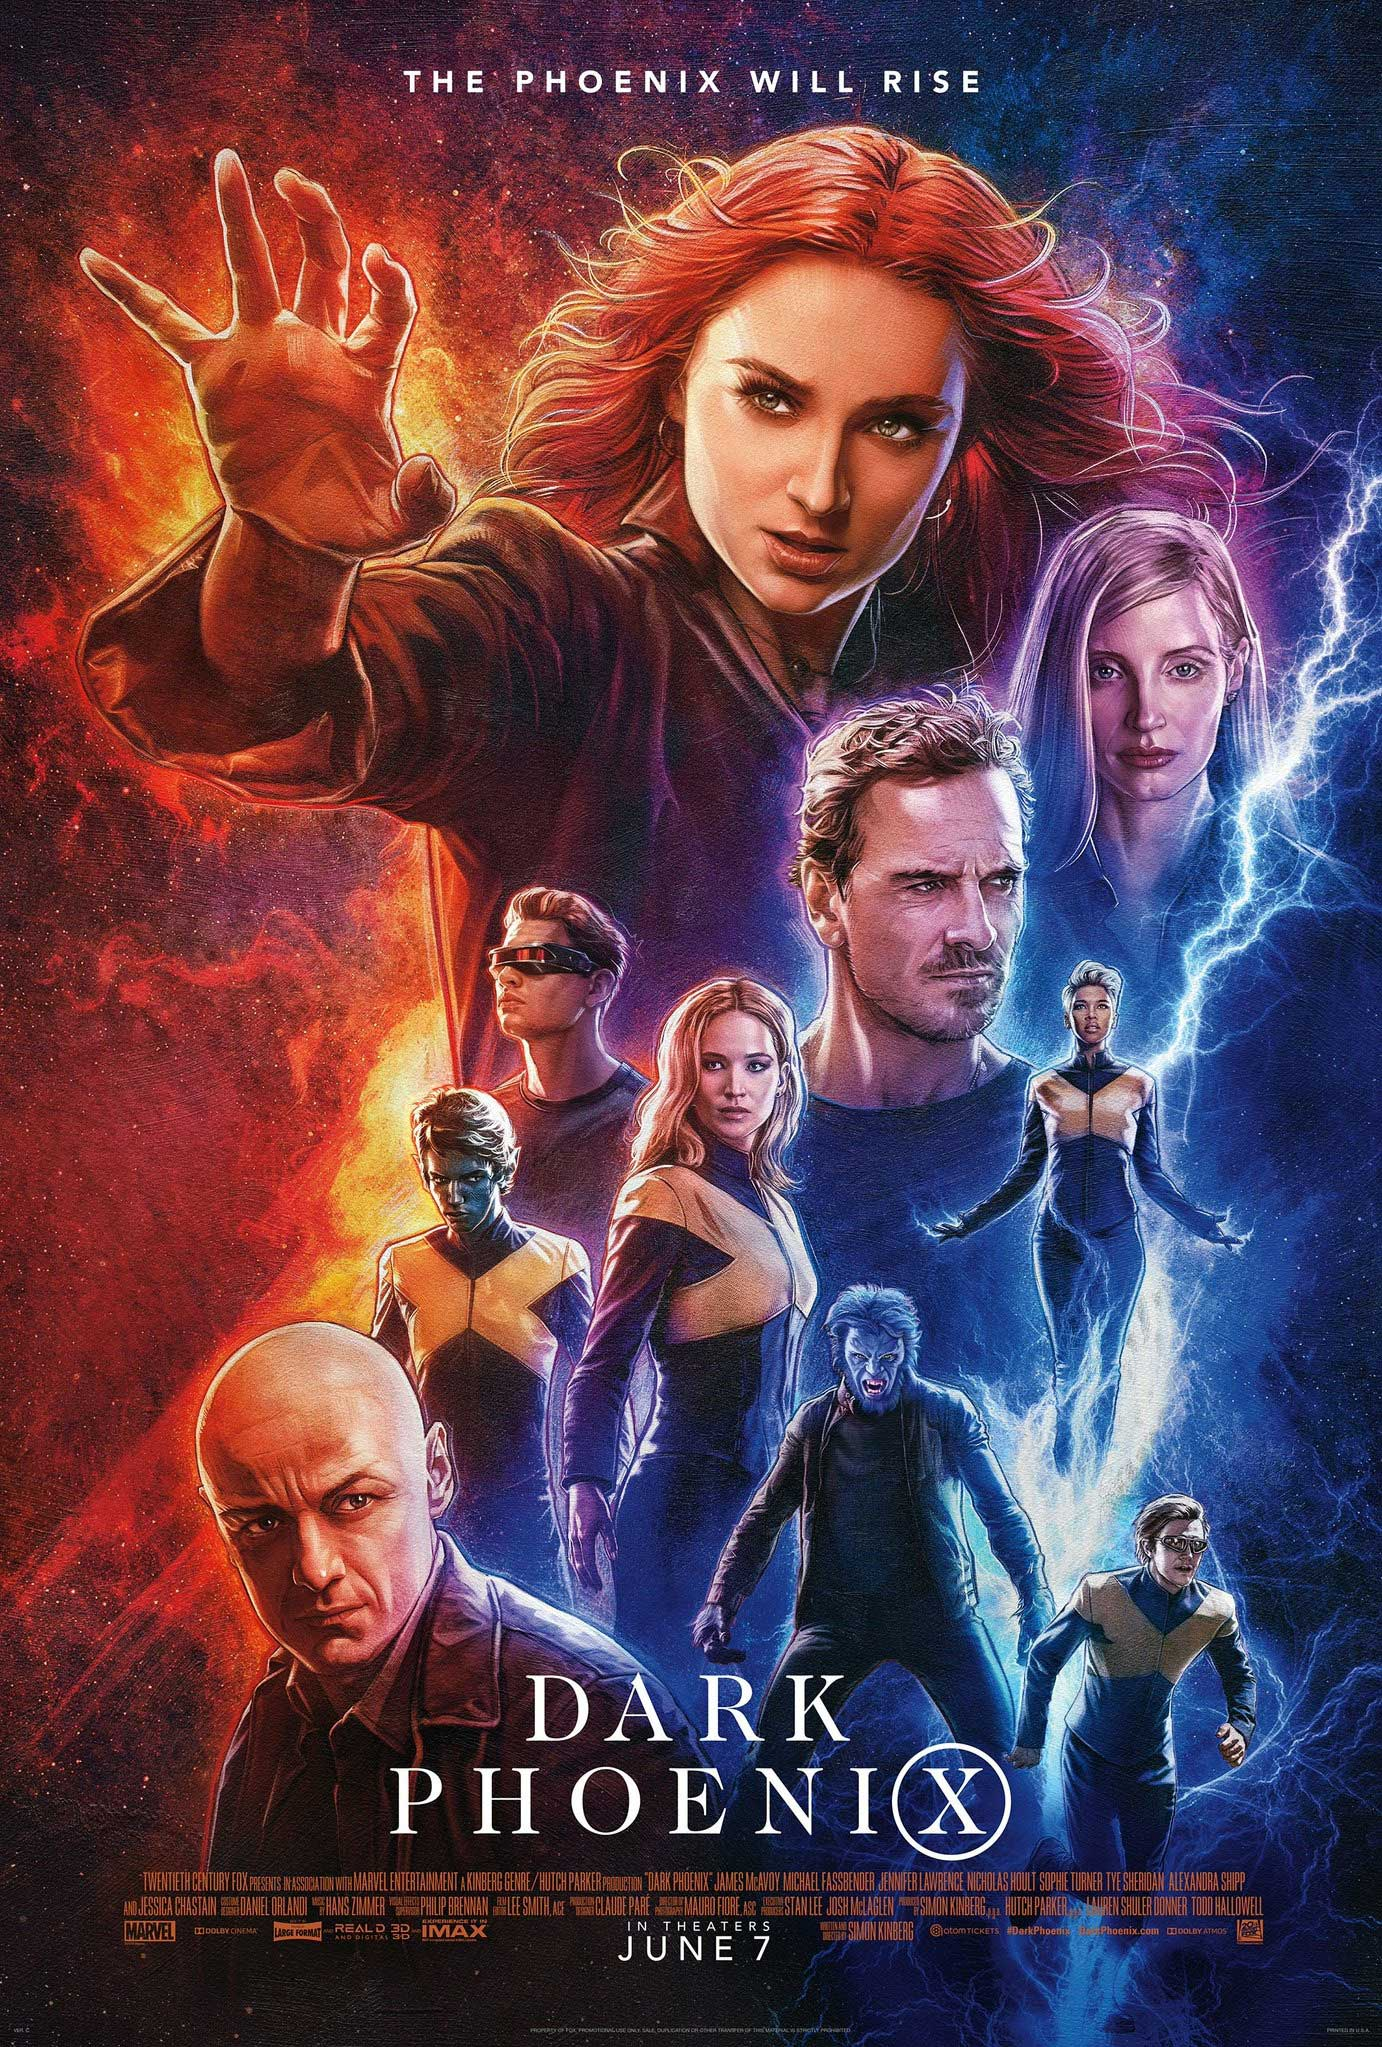 Affiche poster x men dark phoenix disney marvel fox